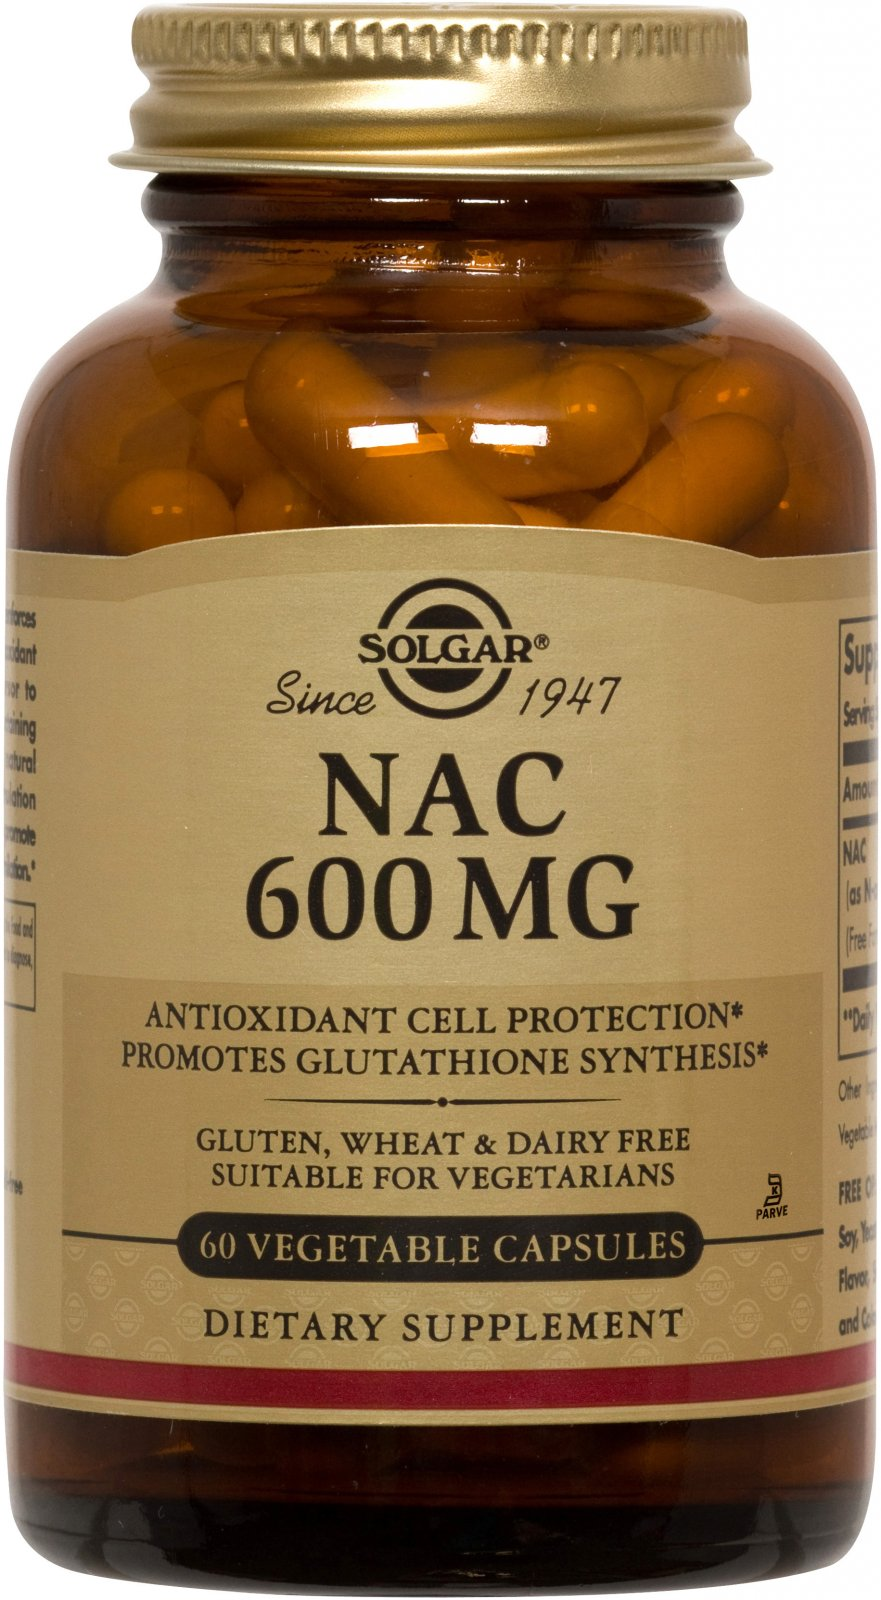 NAC 600 mg Vegetable Capsules